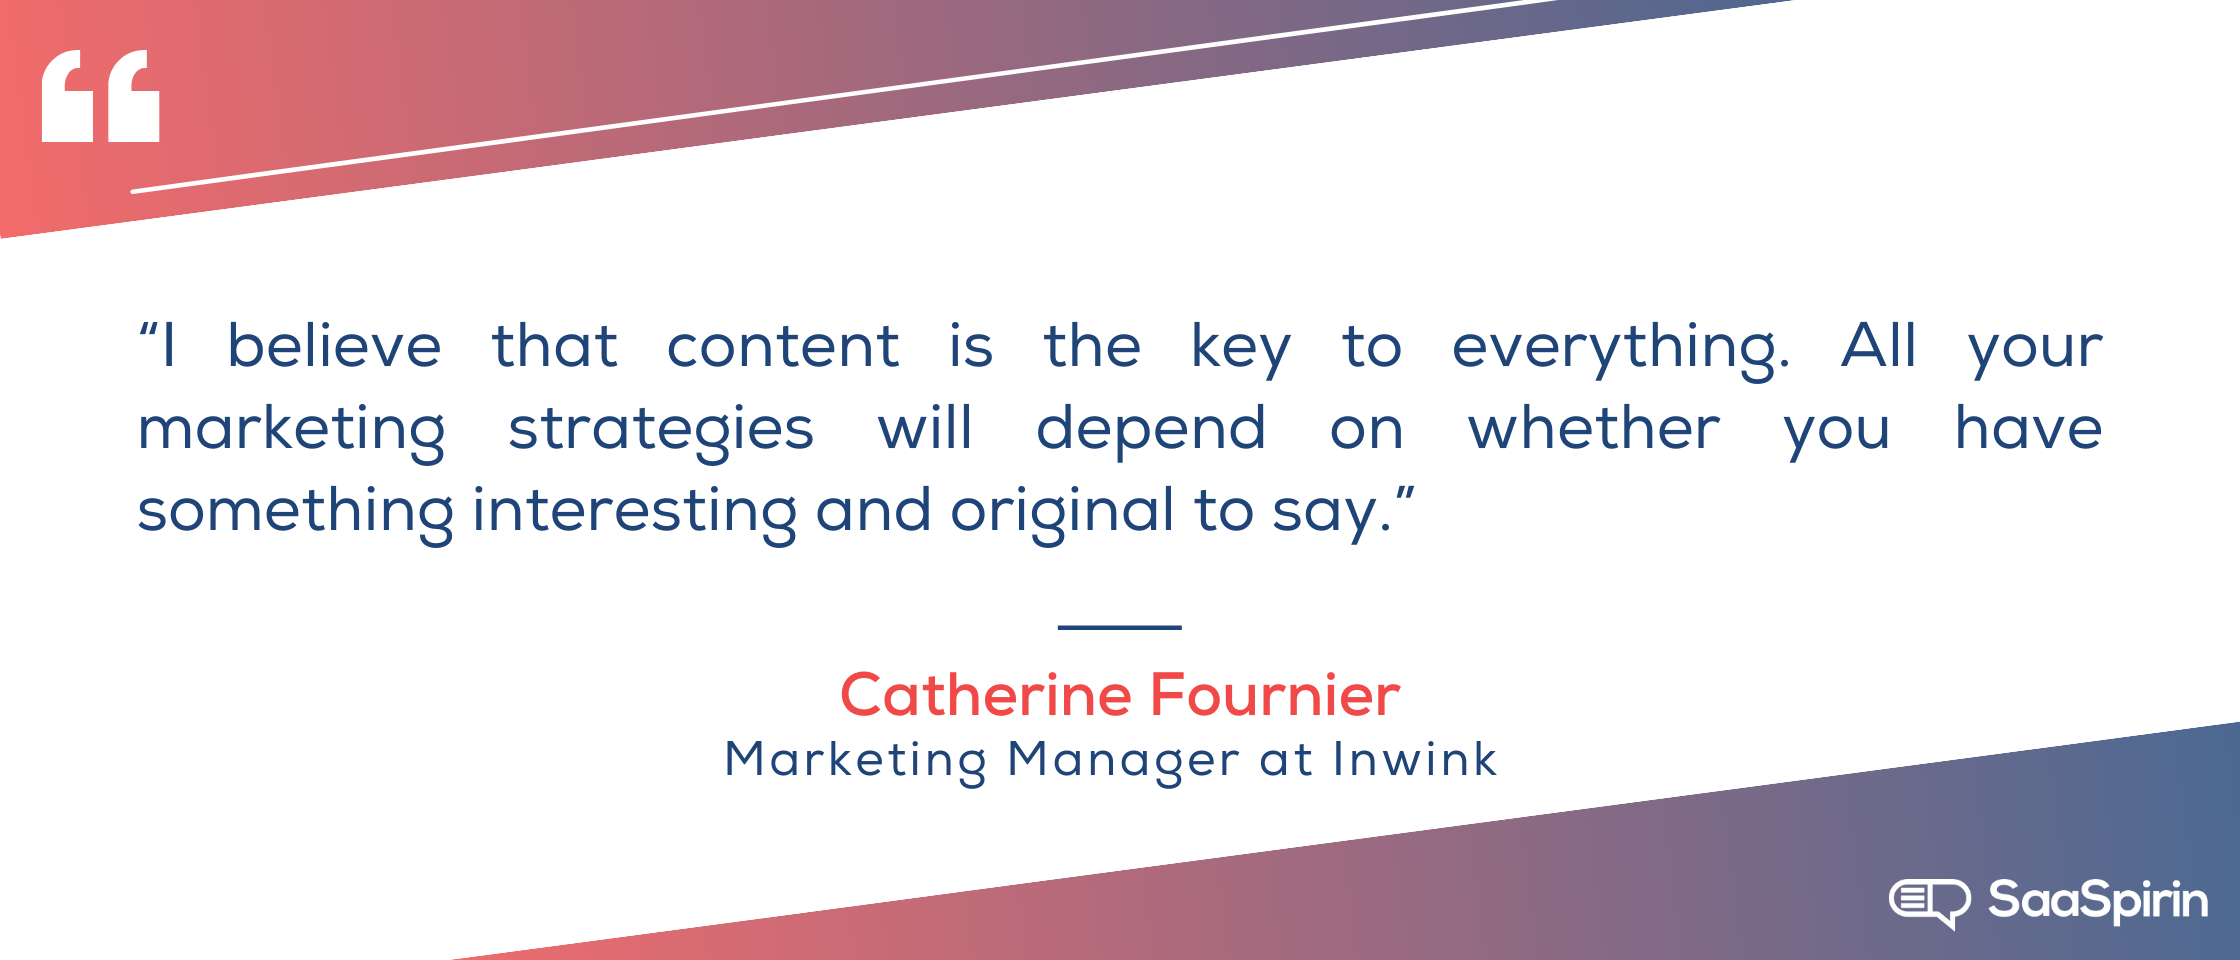 I-believe-that-content-is-the-key-to-everything-All-your-marketing-strategies-will-depend-on-whether-you-have-something-interesting-and-original-to-say.png